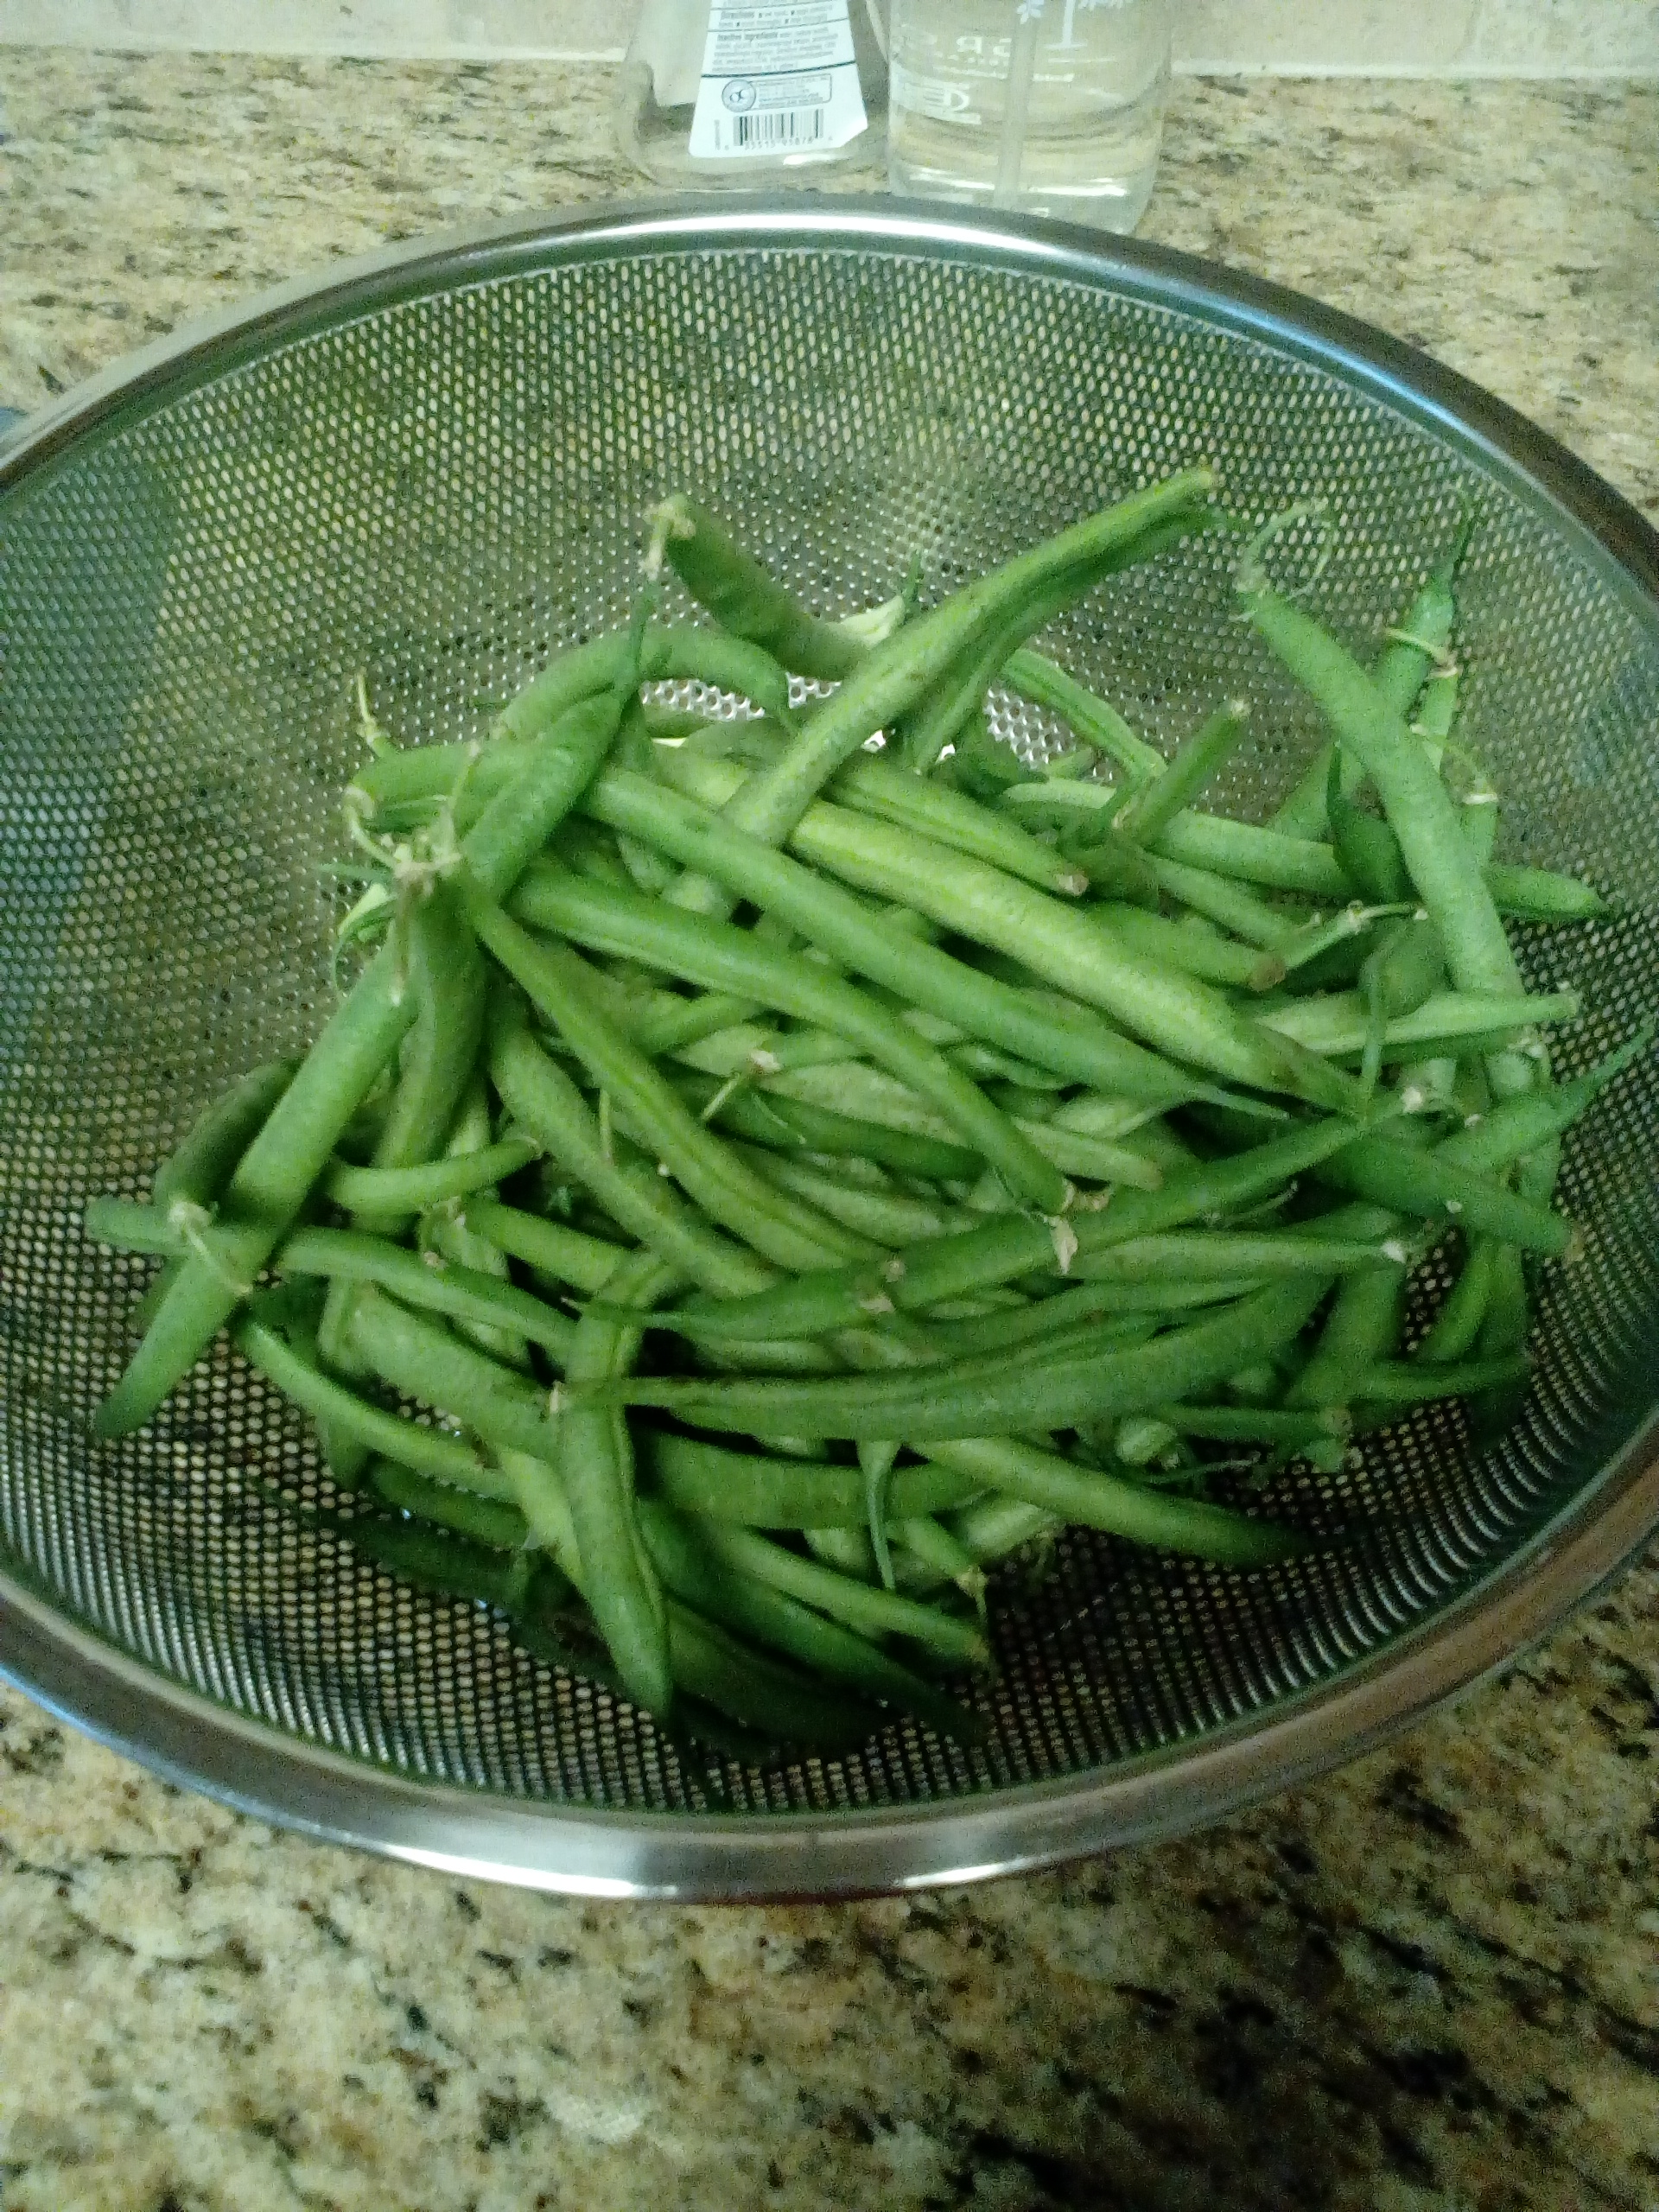 Joyous Cover A Like Green Beans Throw Into Amicrowave Safe Dish Trim Just Line Up A Few At A Water Tablespoons Microwave Tried Liked It nice food Microwave Green Beans